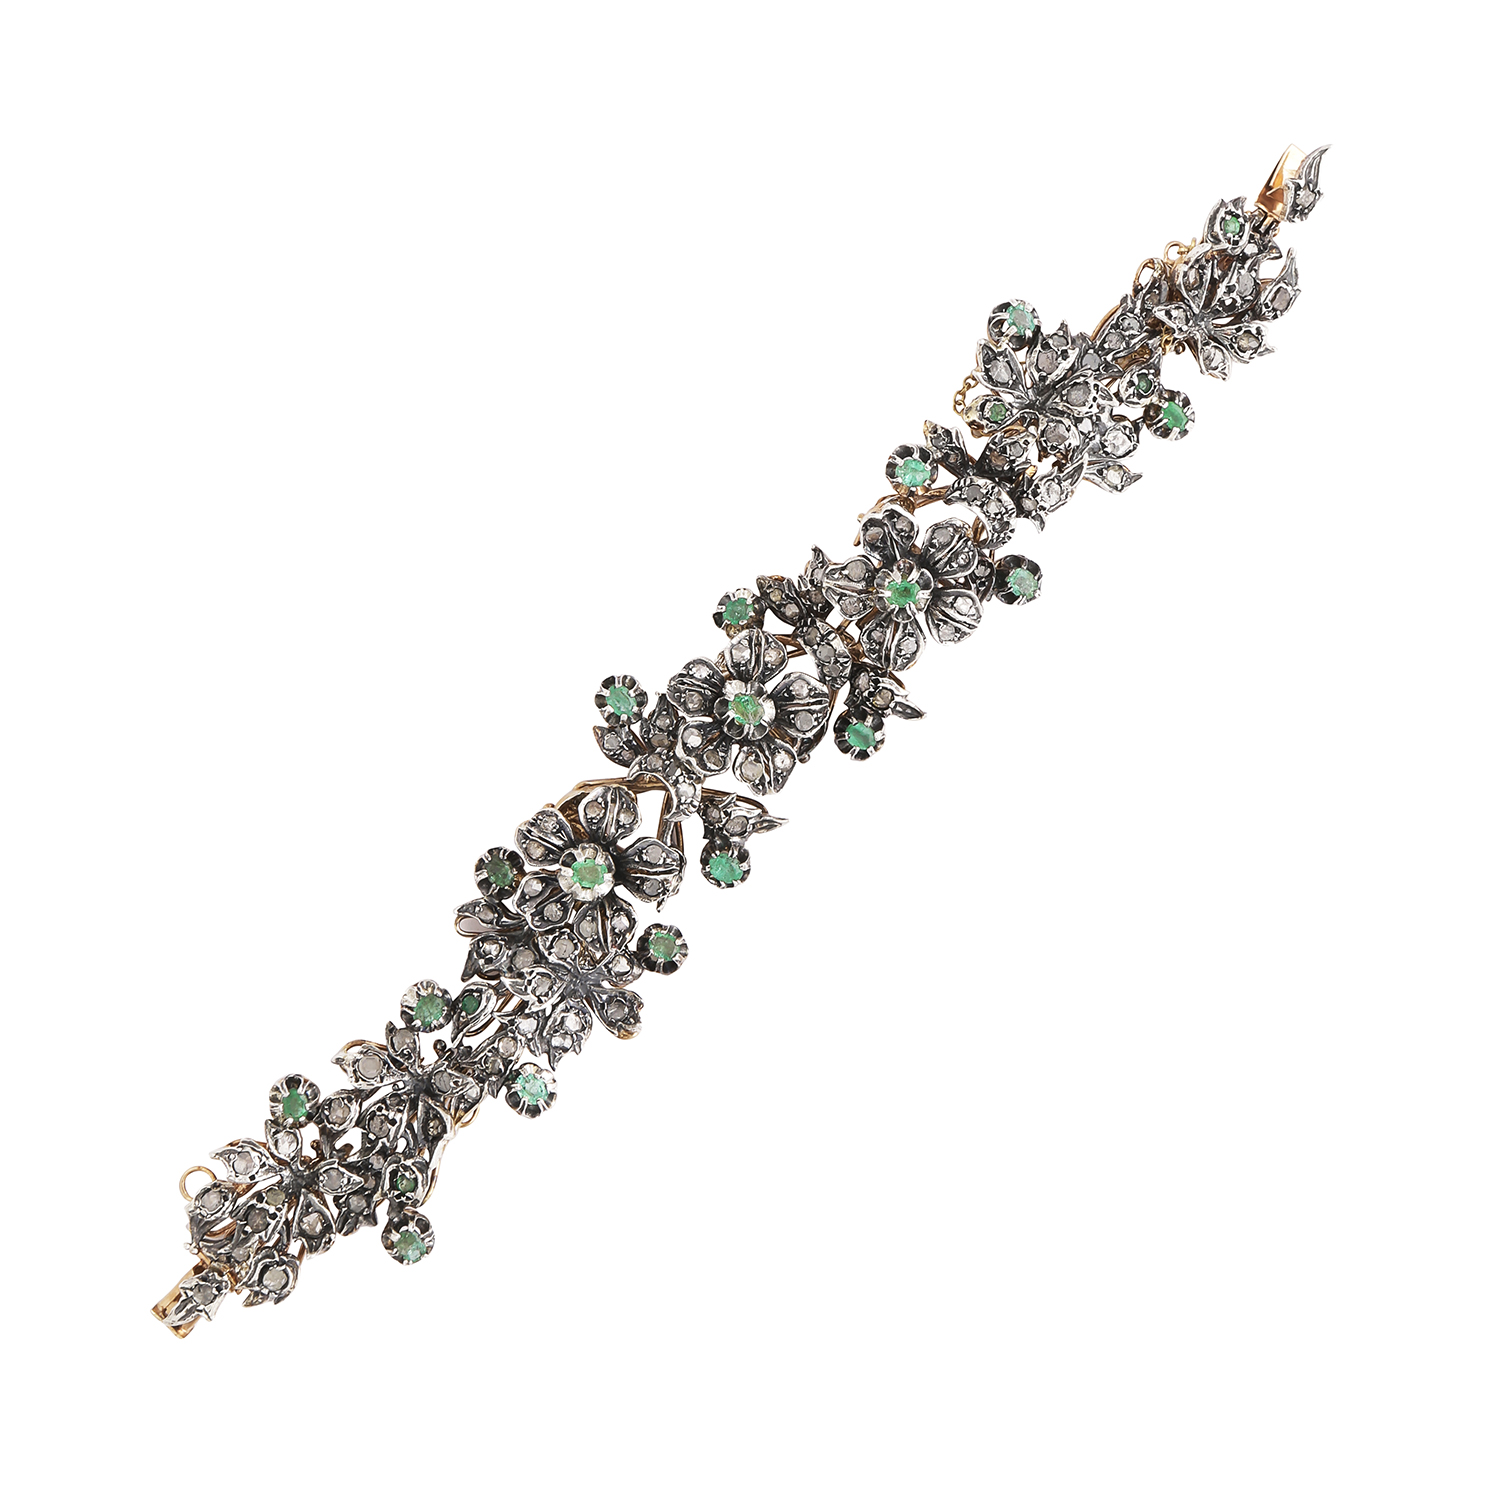 Los 43 - AN ANTIQUE EMERALD AND DIAMOND BRACELET, EARLY 19TH CENTURY in yellow gold and silver, the